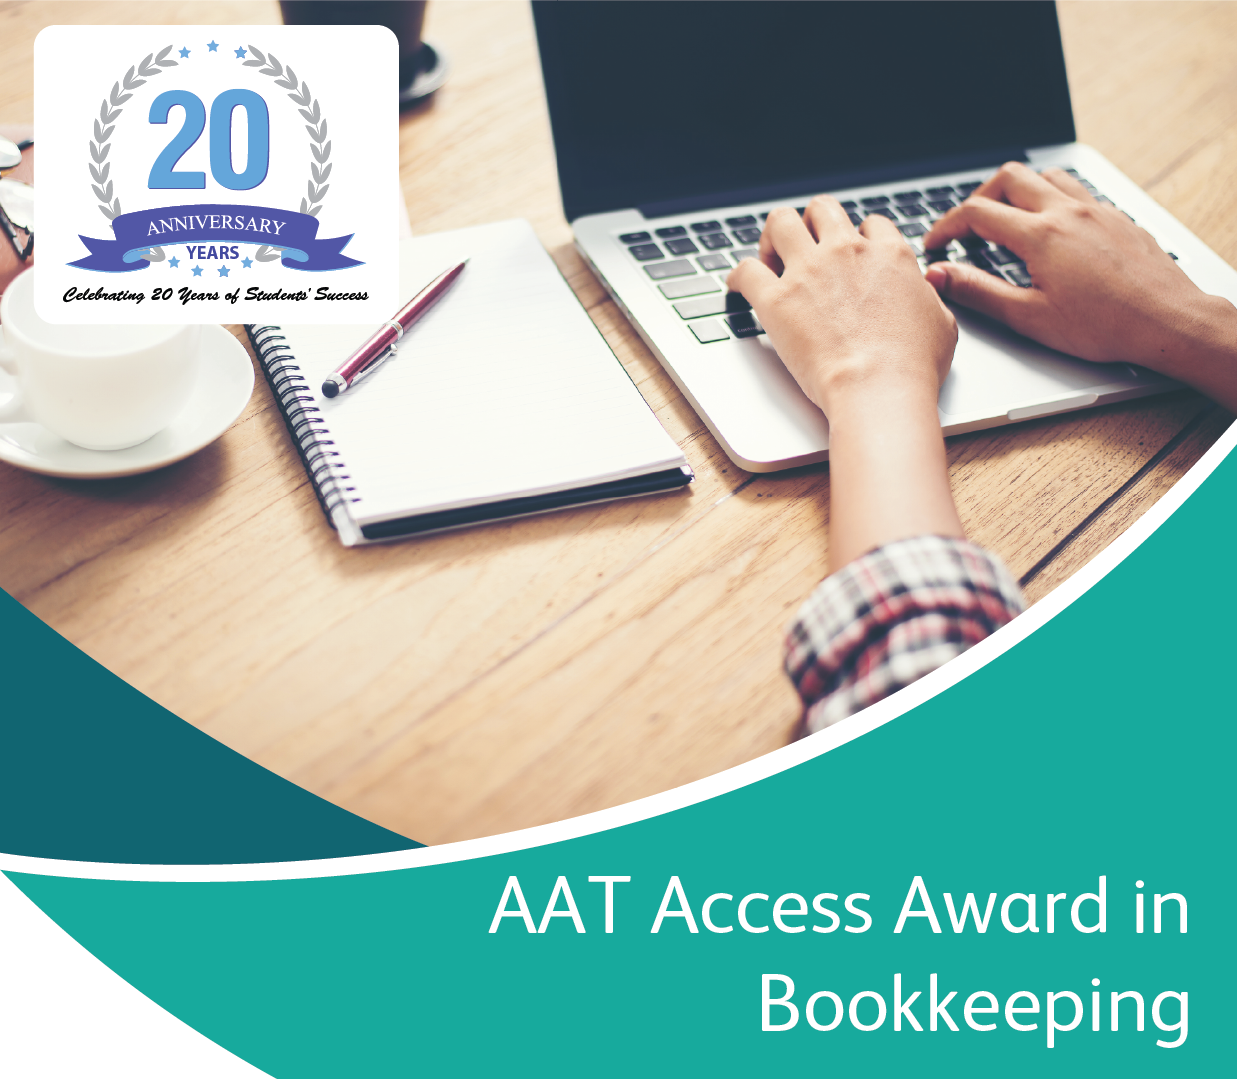 AAT Access Award in Bookkeeping course